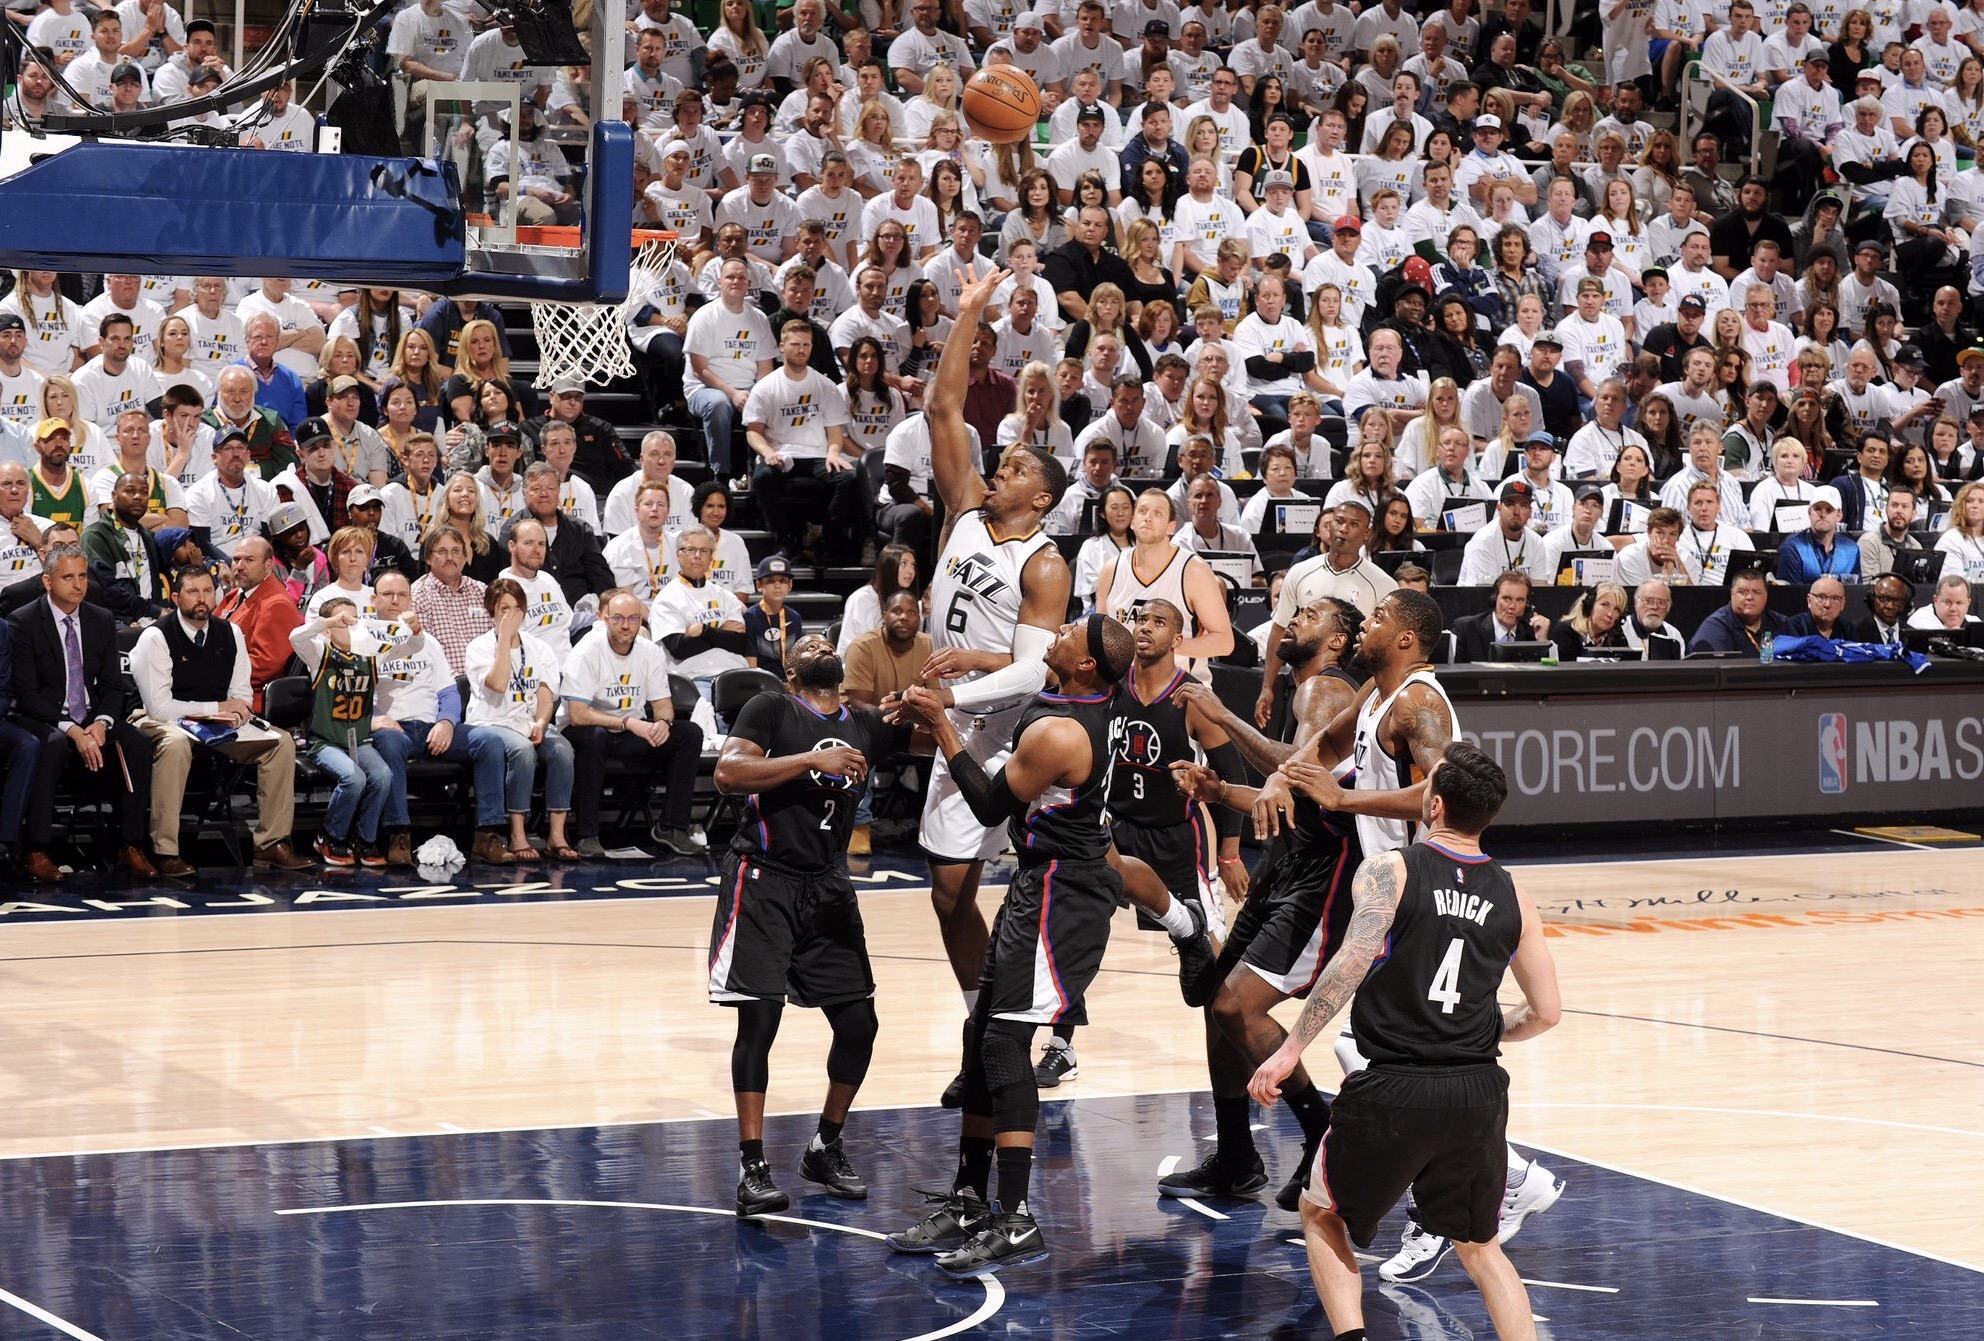 Joe Johnson of the Jazz rises over Clippers' defenders for a floater in Sunday night's game.